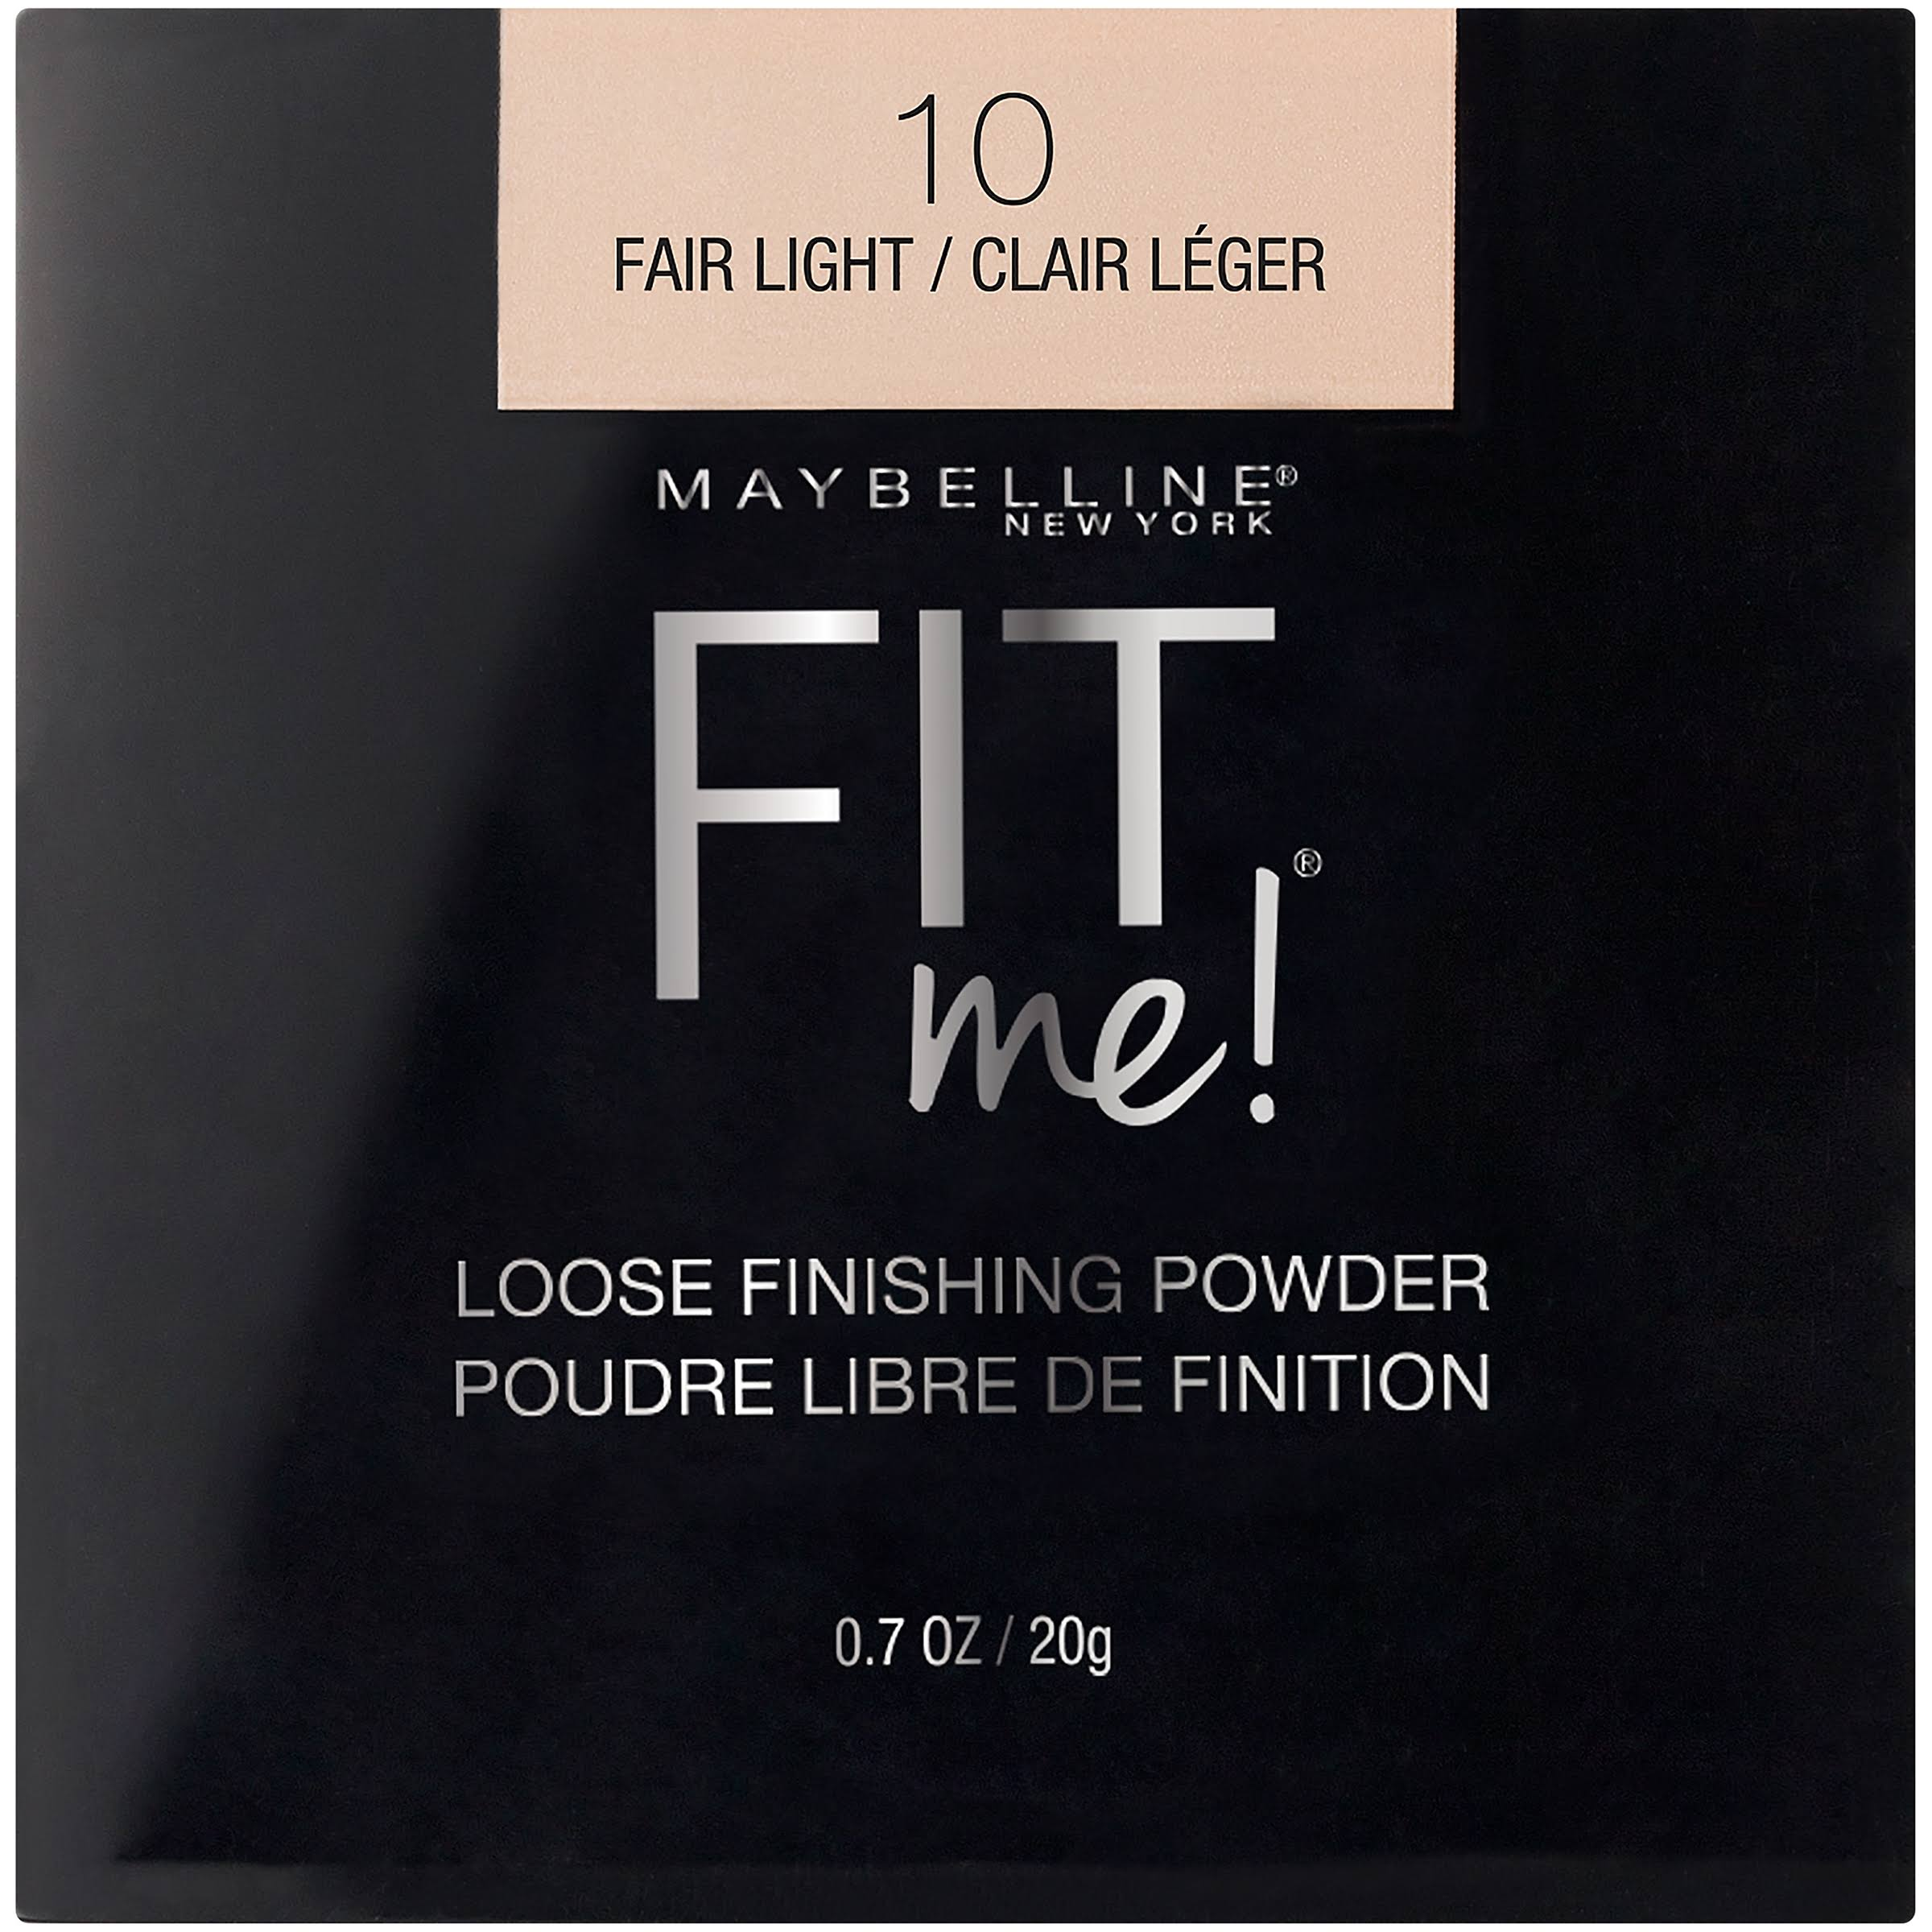 Maybelline New York Fit Me Loose Finishing Powder - 10 Fair Light, 20g